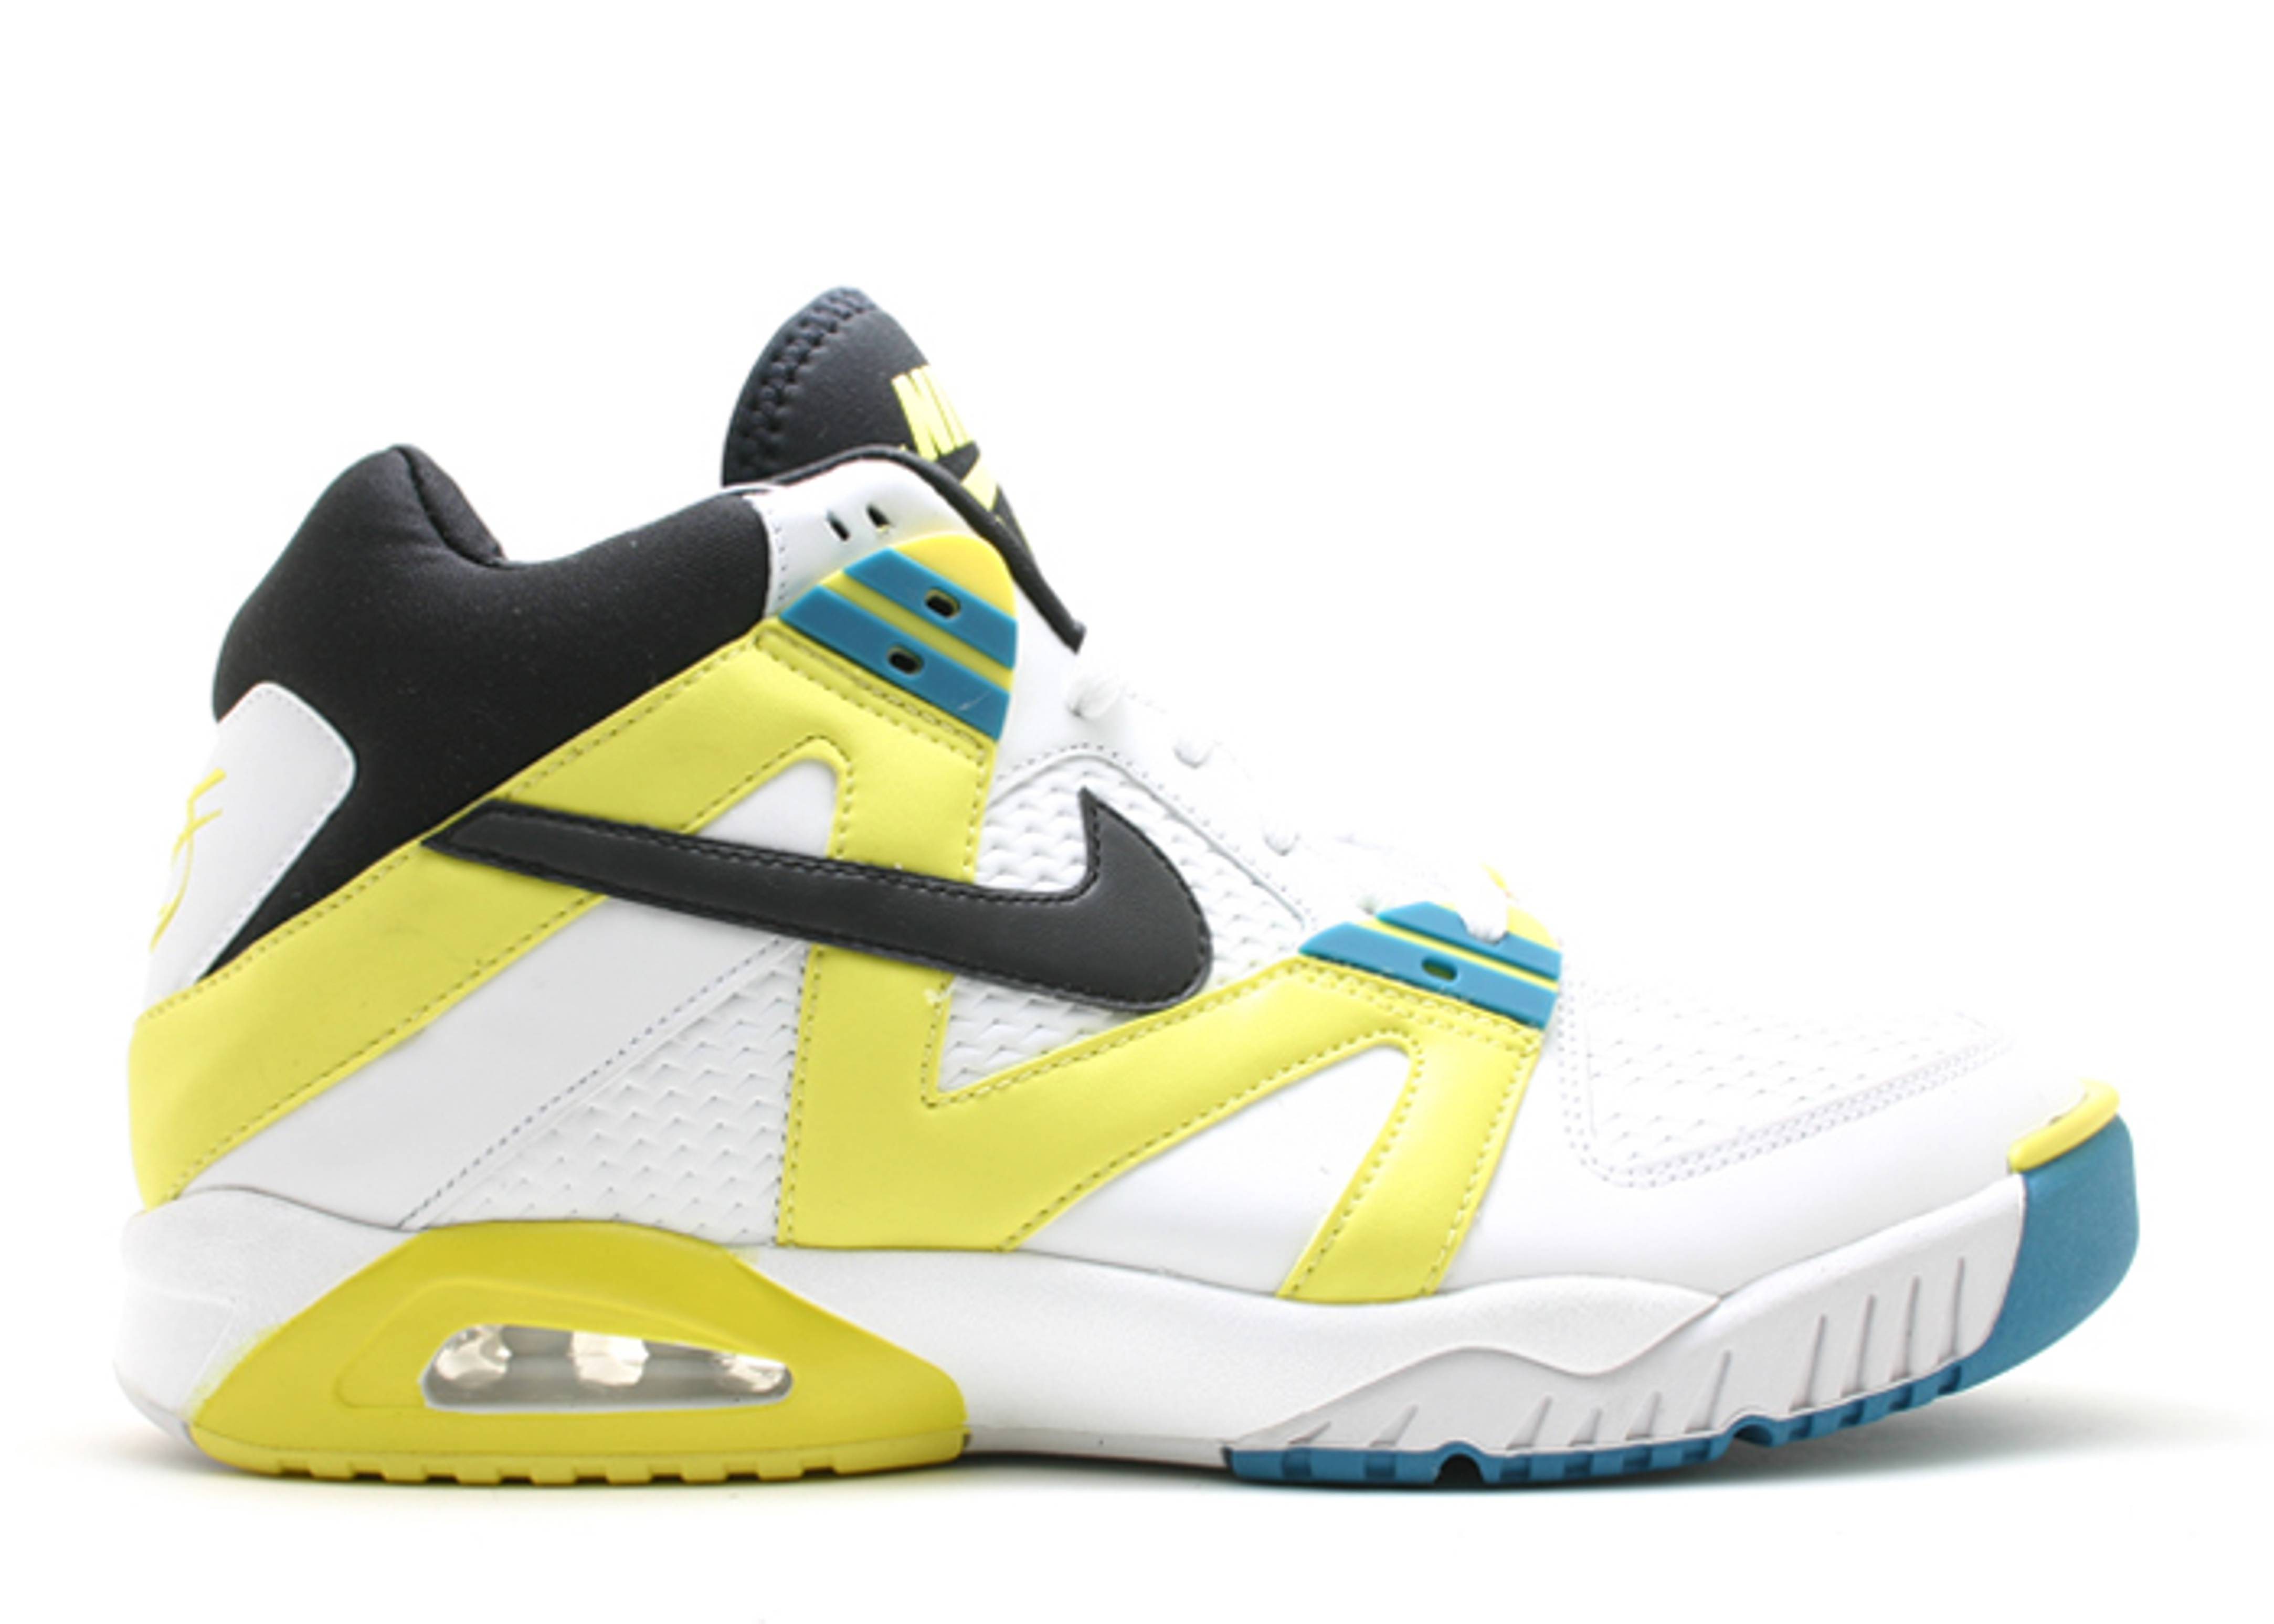 Air tech challenge agassi nike 315956 102 white black sonic yellow flight club - Nike air tech challenge ...